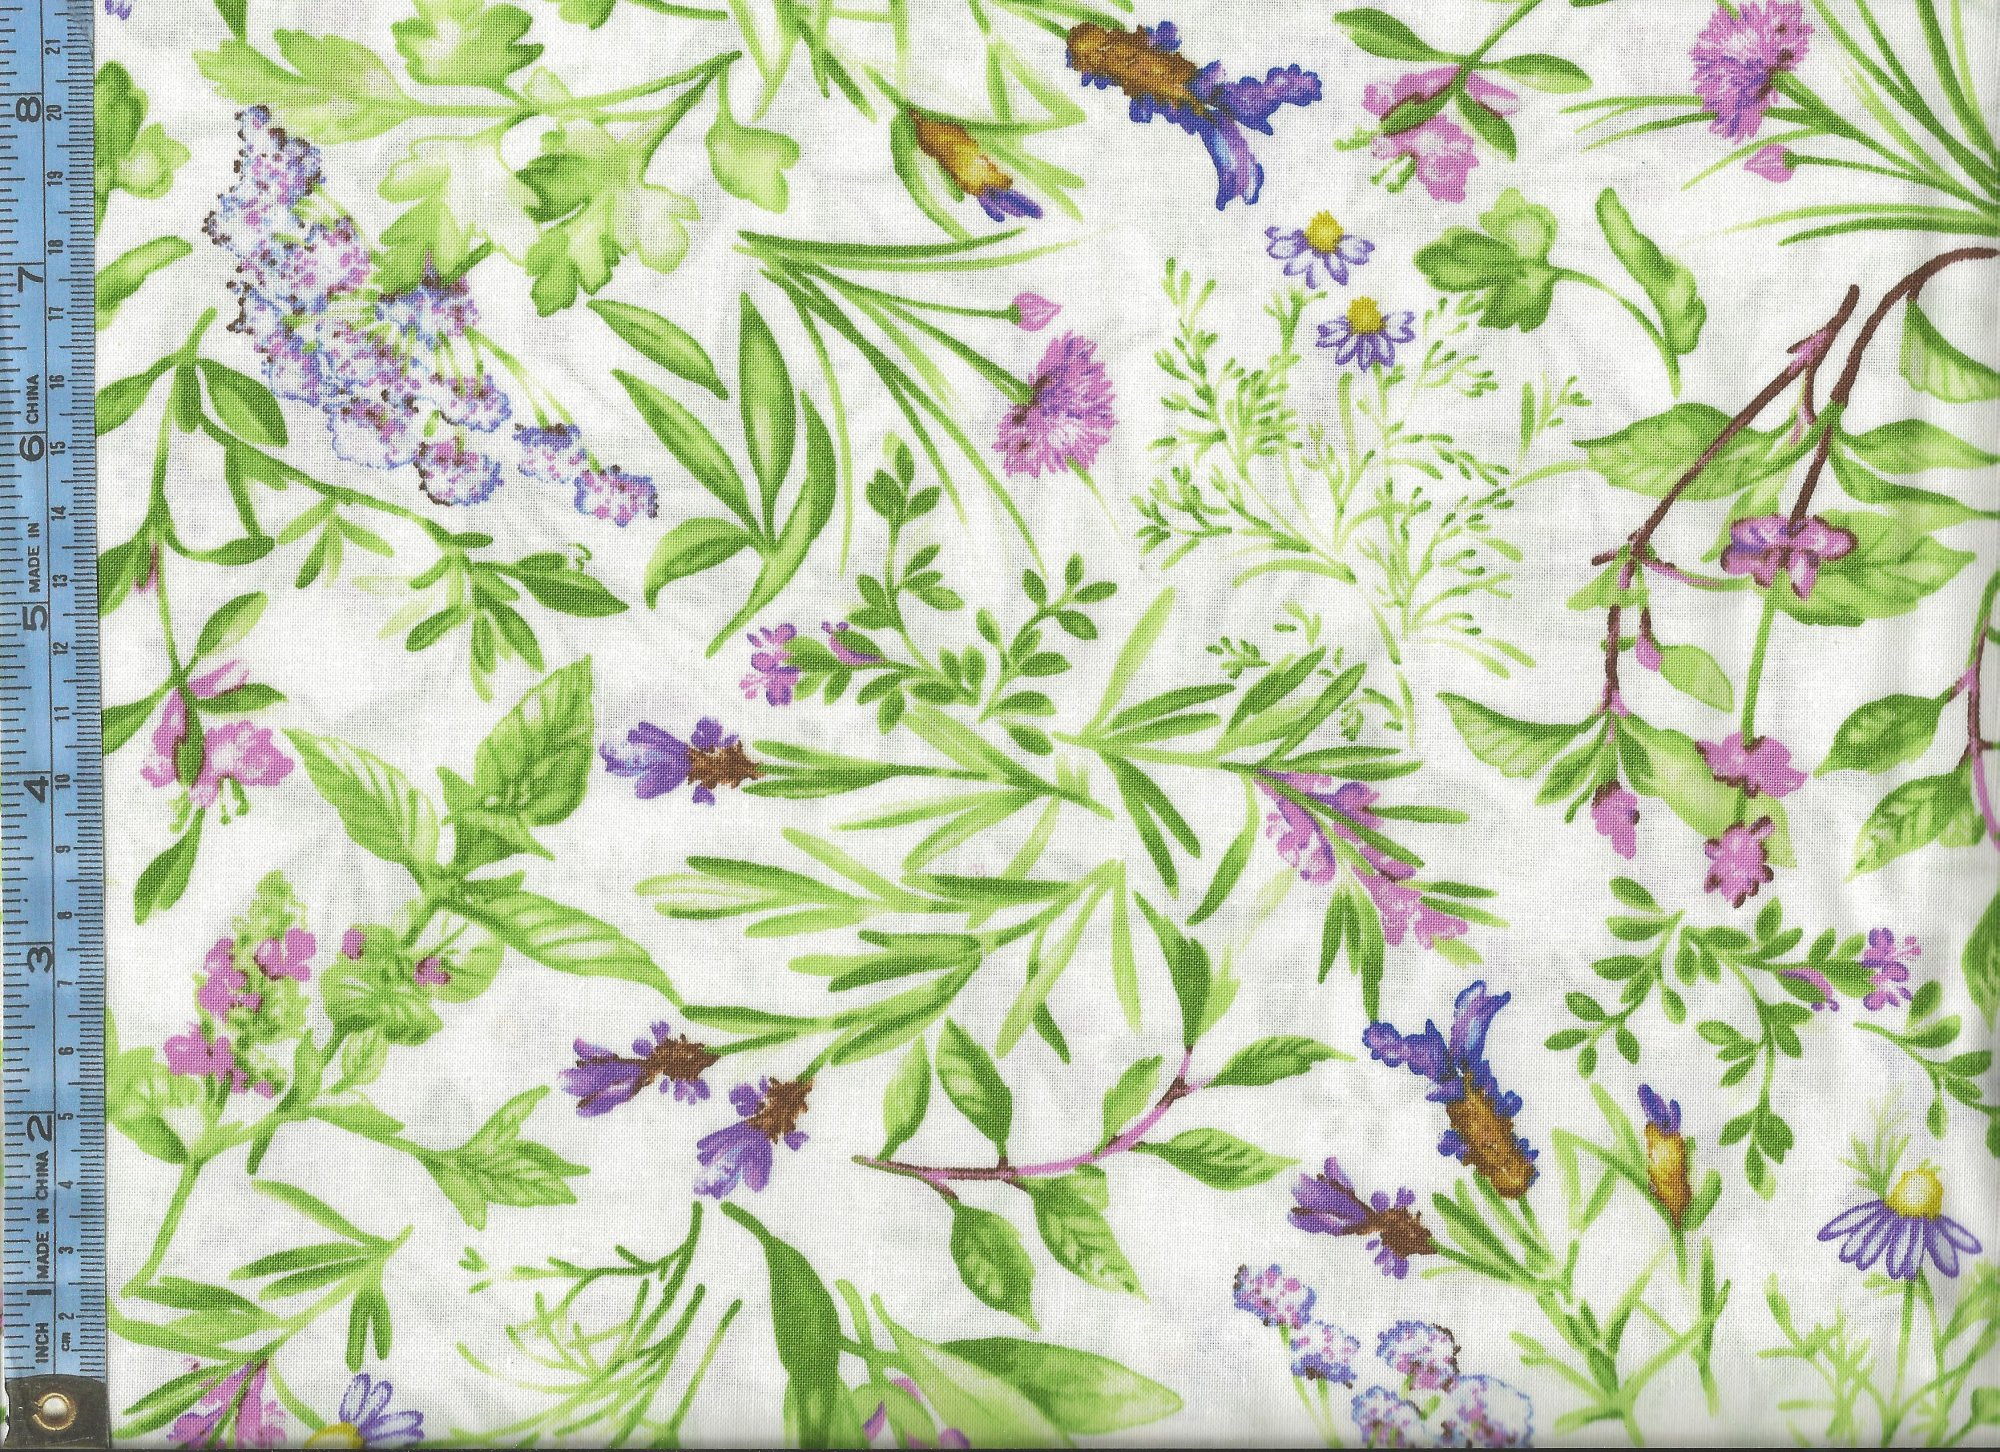 Flow blue garden herbs with purple flowers on white background mightylinksfo Choice Image